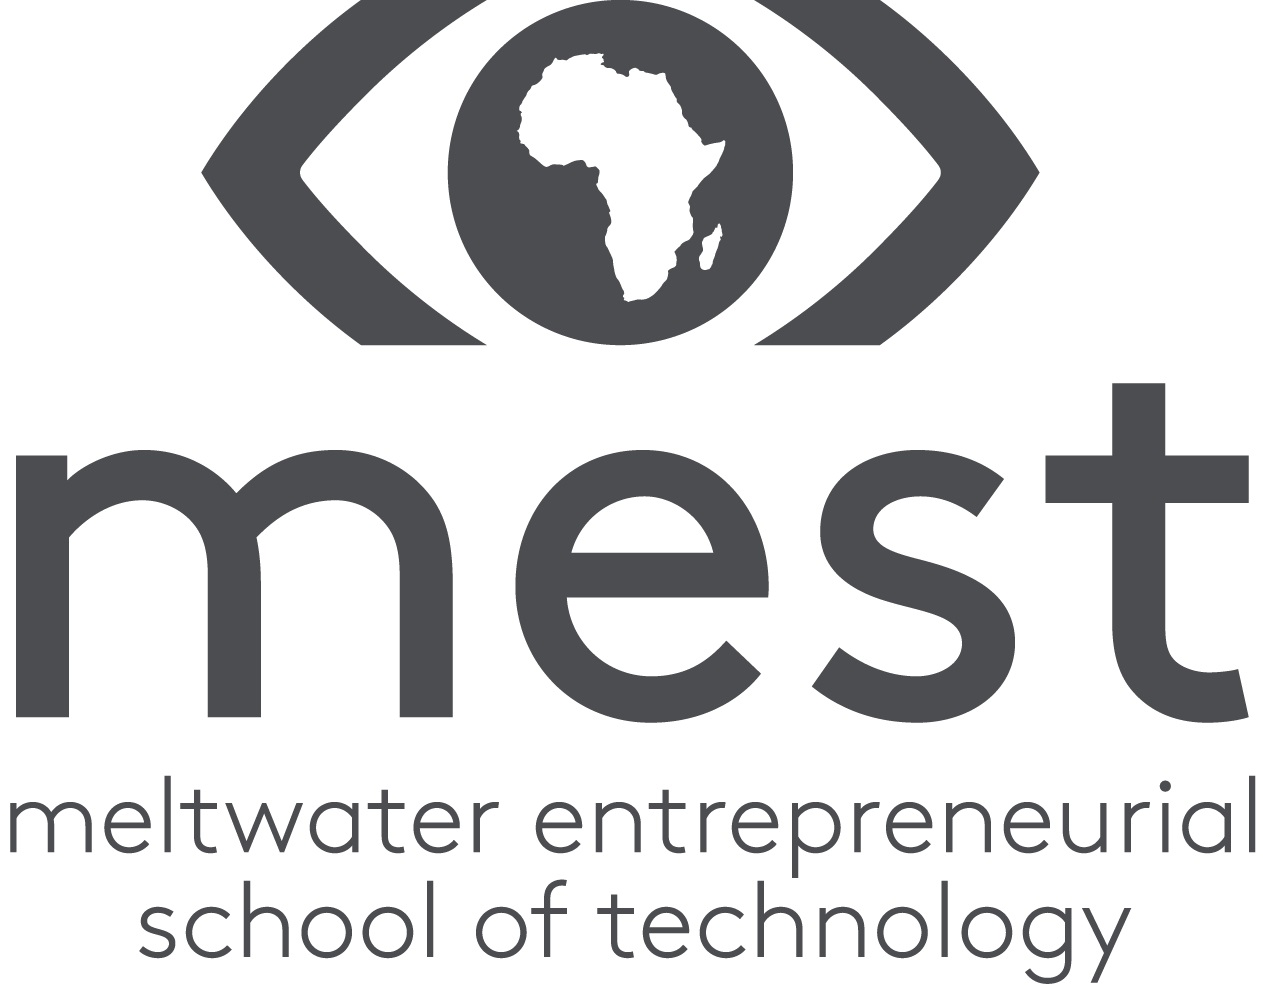 The MEST Training Programme is Recruiting in South Africa and expanding to Kenya and Nigeria